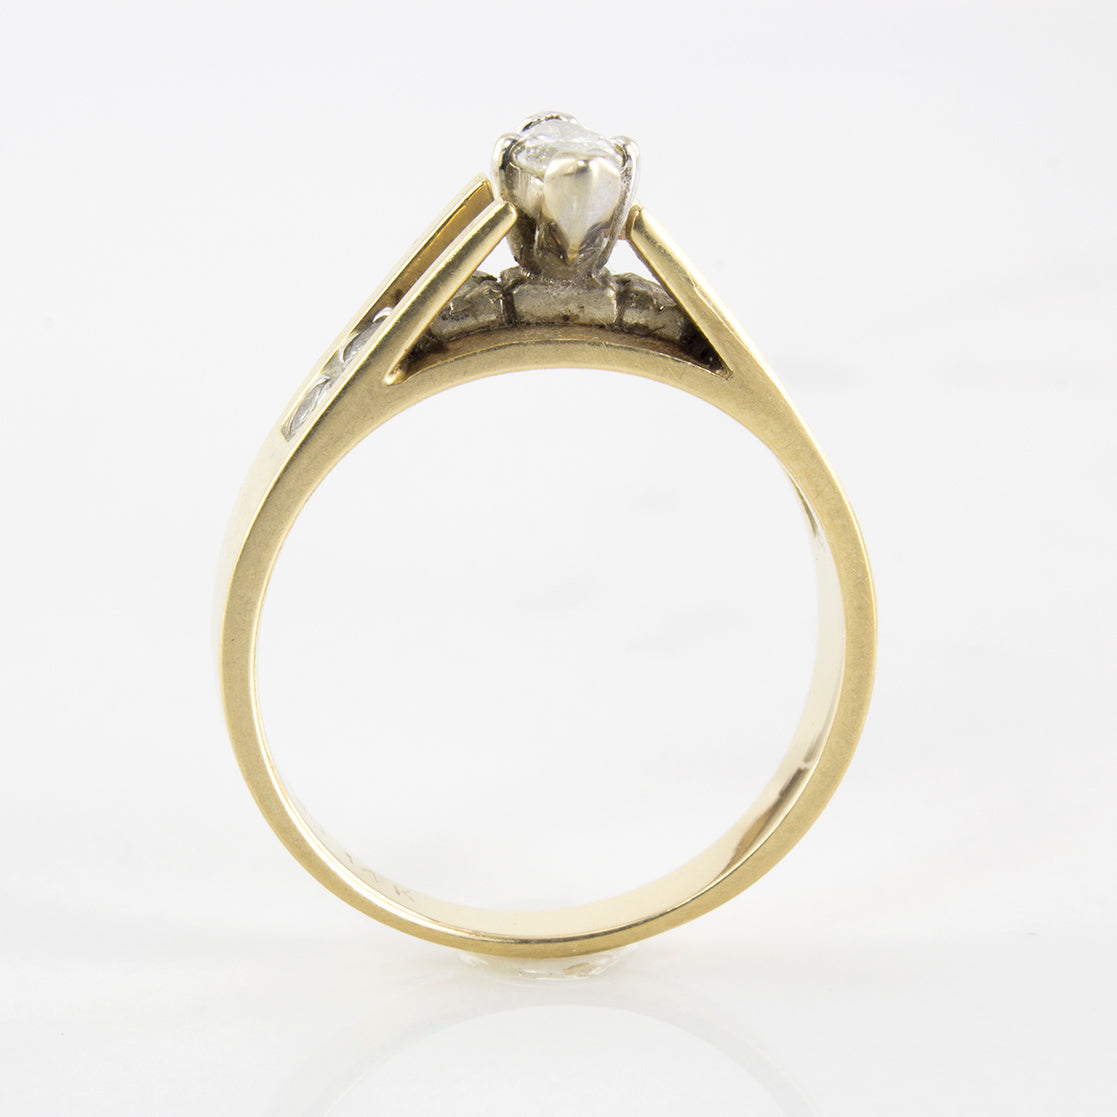 Marquise Diamond Solitaire Ring | 0.47 ctw | SZ 5.75 |